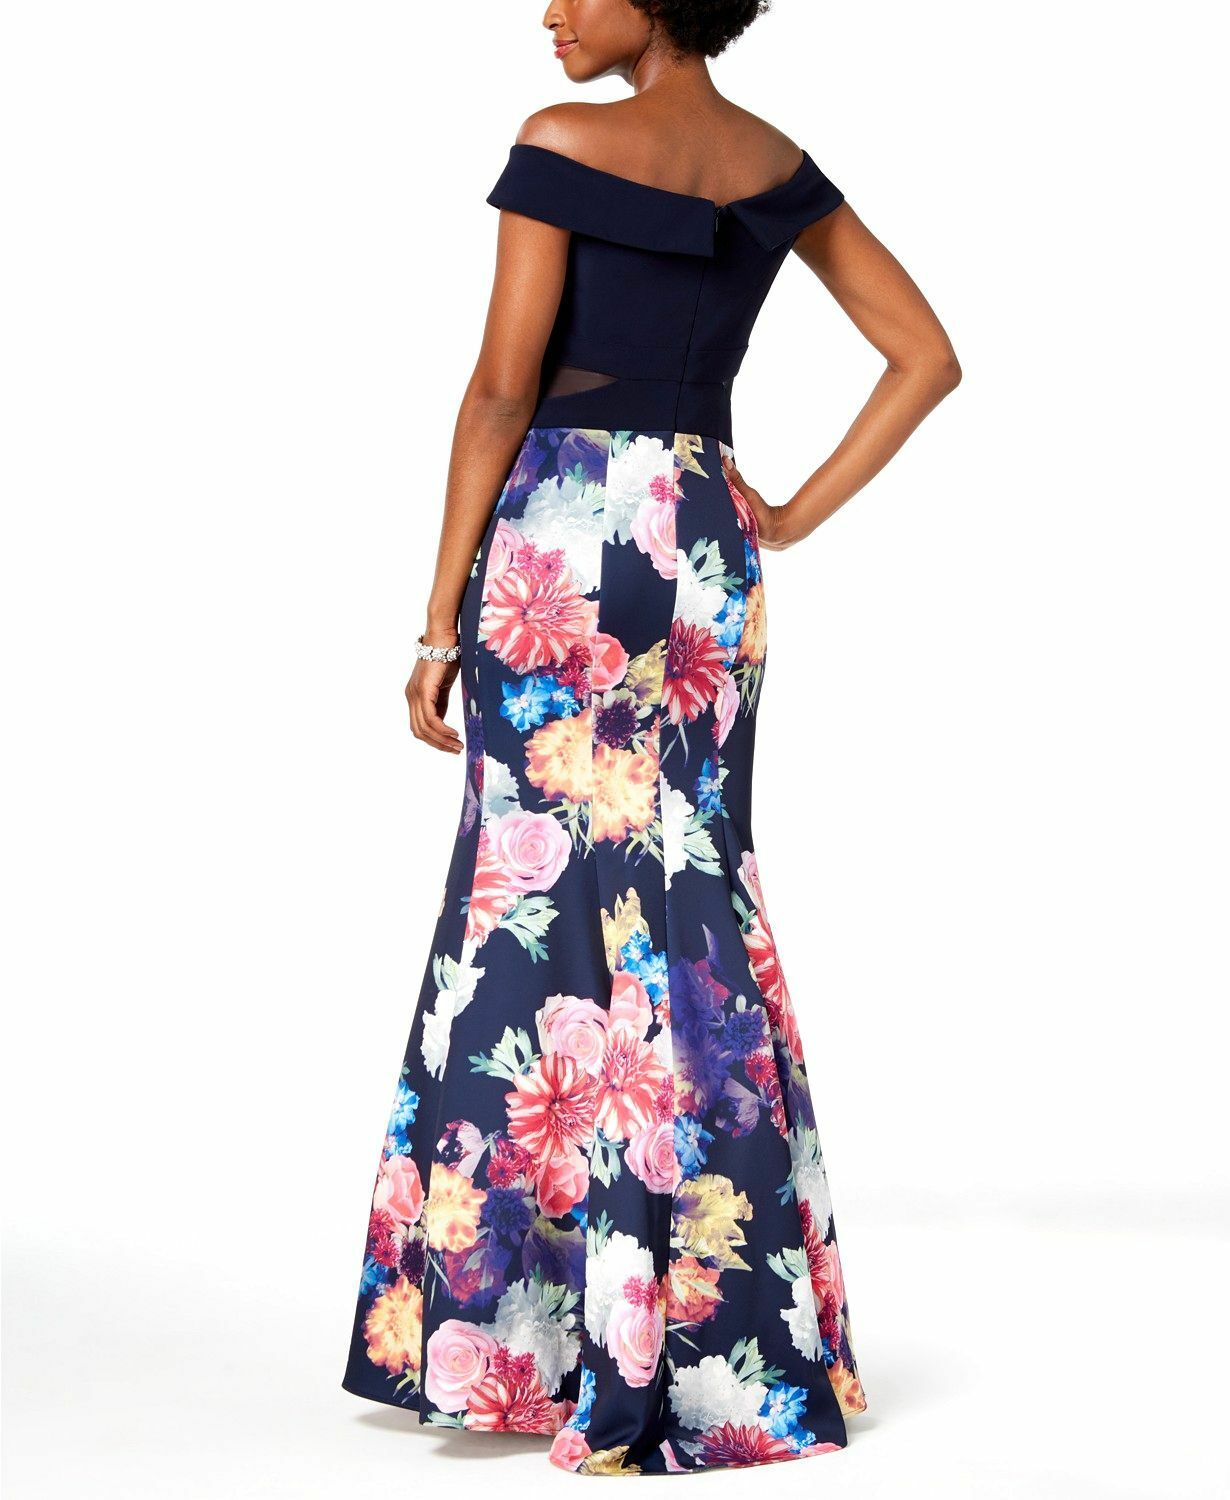 430 XSCAPE WOMENS blueE PINK YELLOW FLORAL SWEETHEART GOWN MERMAID DRESS SIZE 6